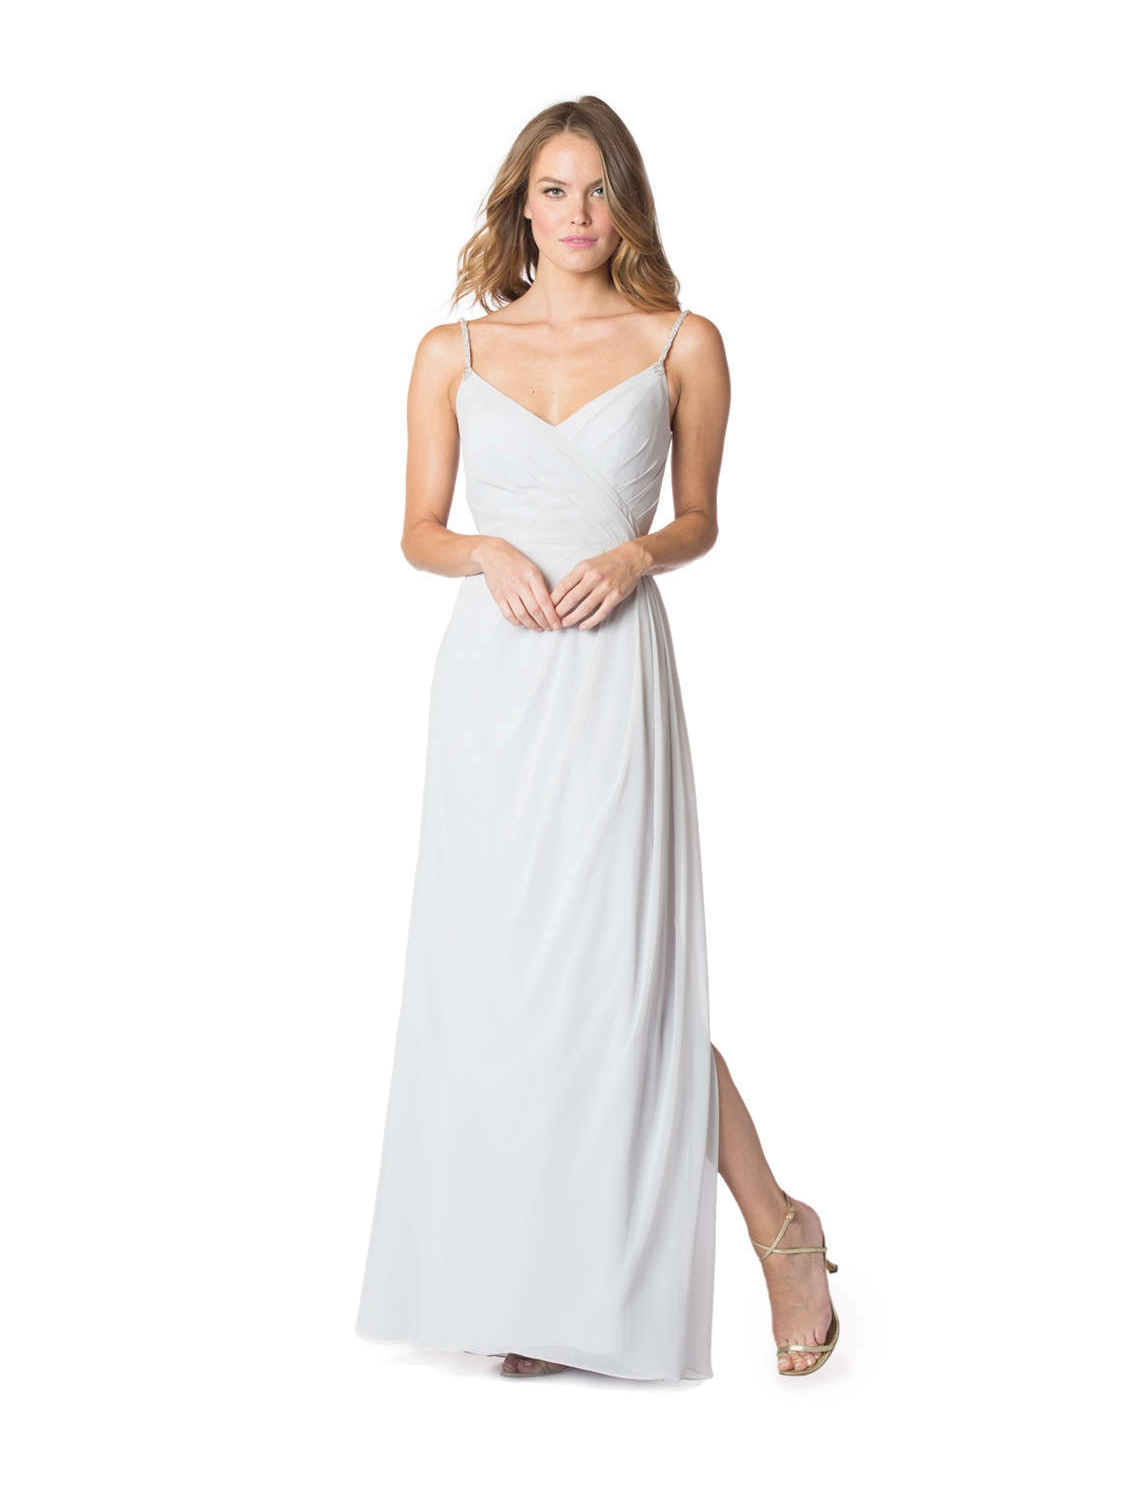 Bari jay bridesmaid dress style bc 1615 house of brides select color ombrellifo Images